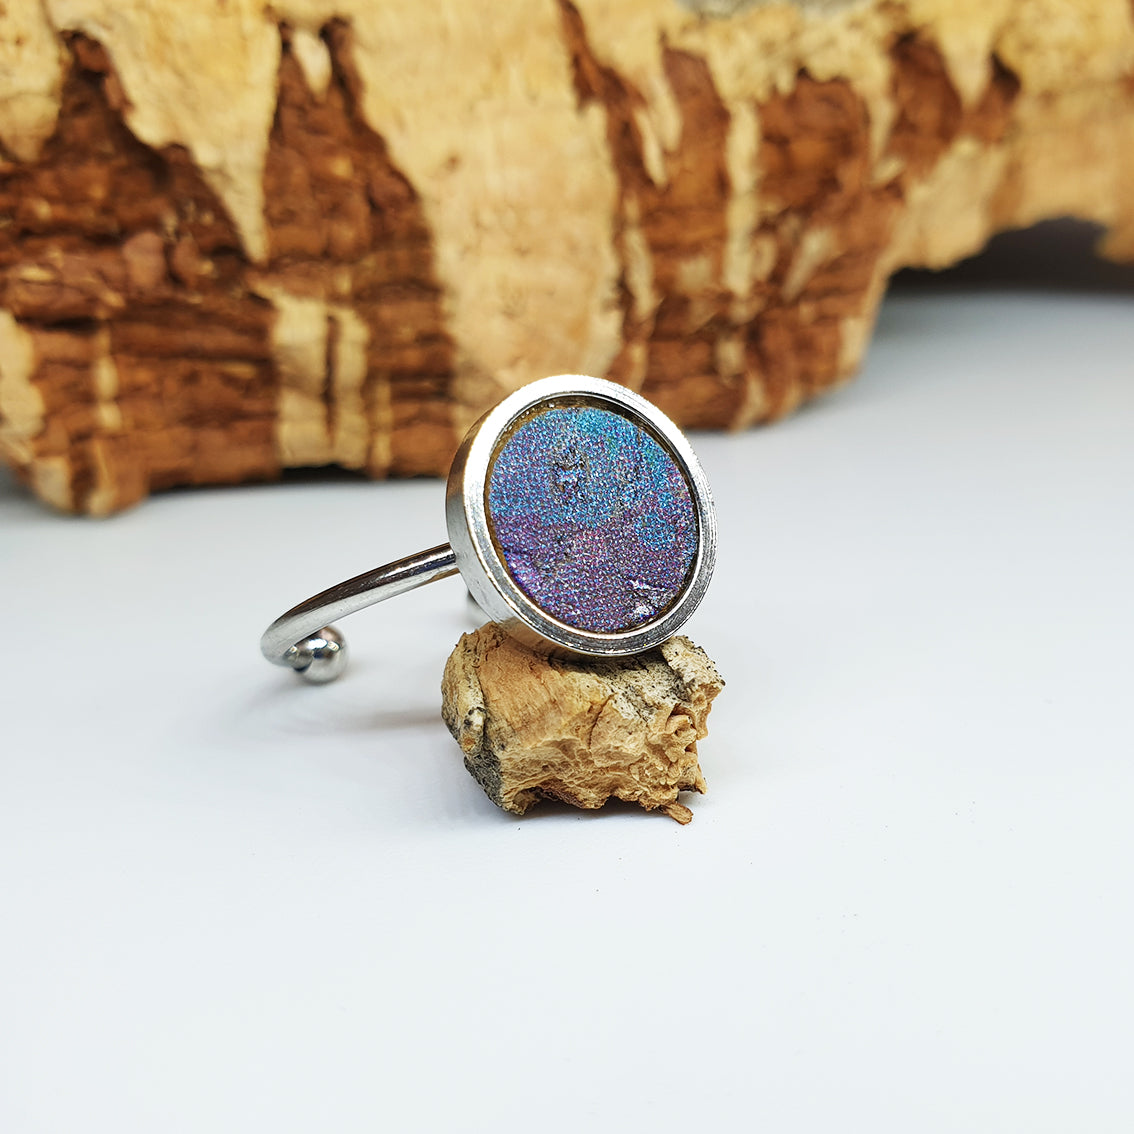 Fabrikk 1 Planet Stacking Ring Set | Small-Medium-Large | Cosmic Splash Purple | Vegan Leather